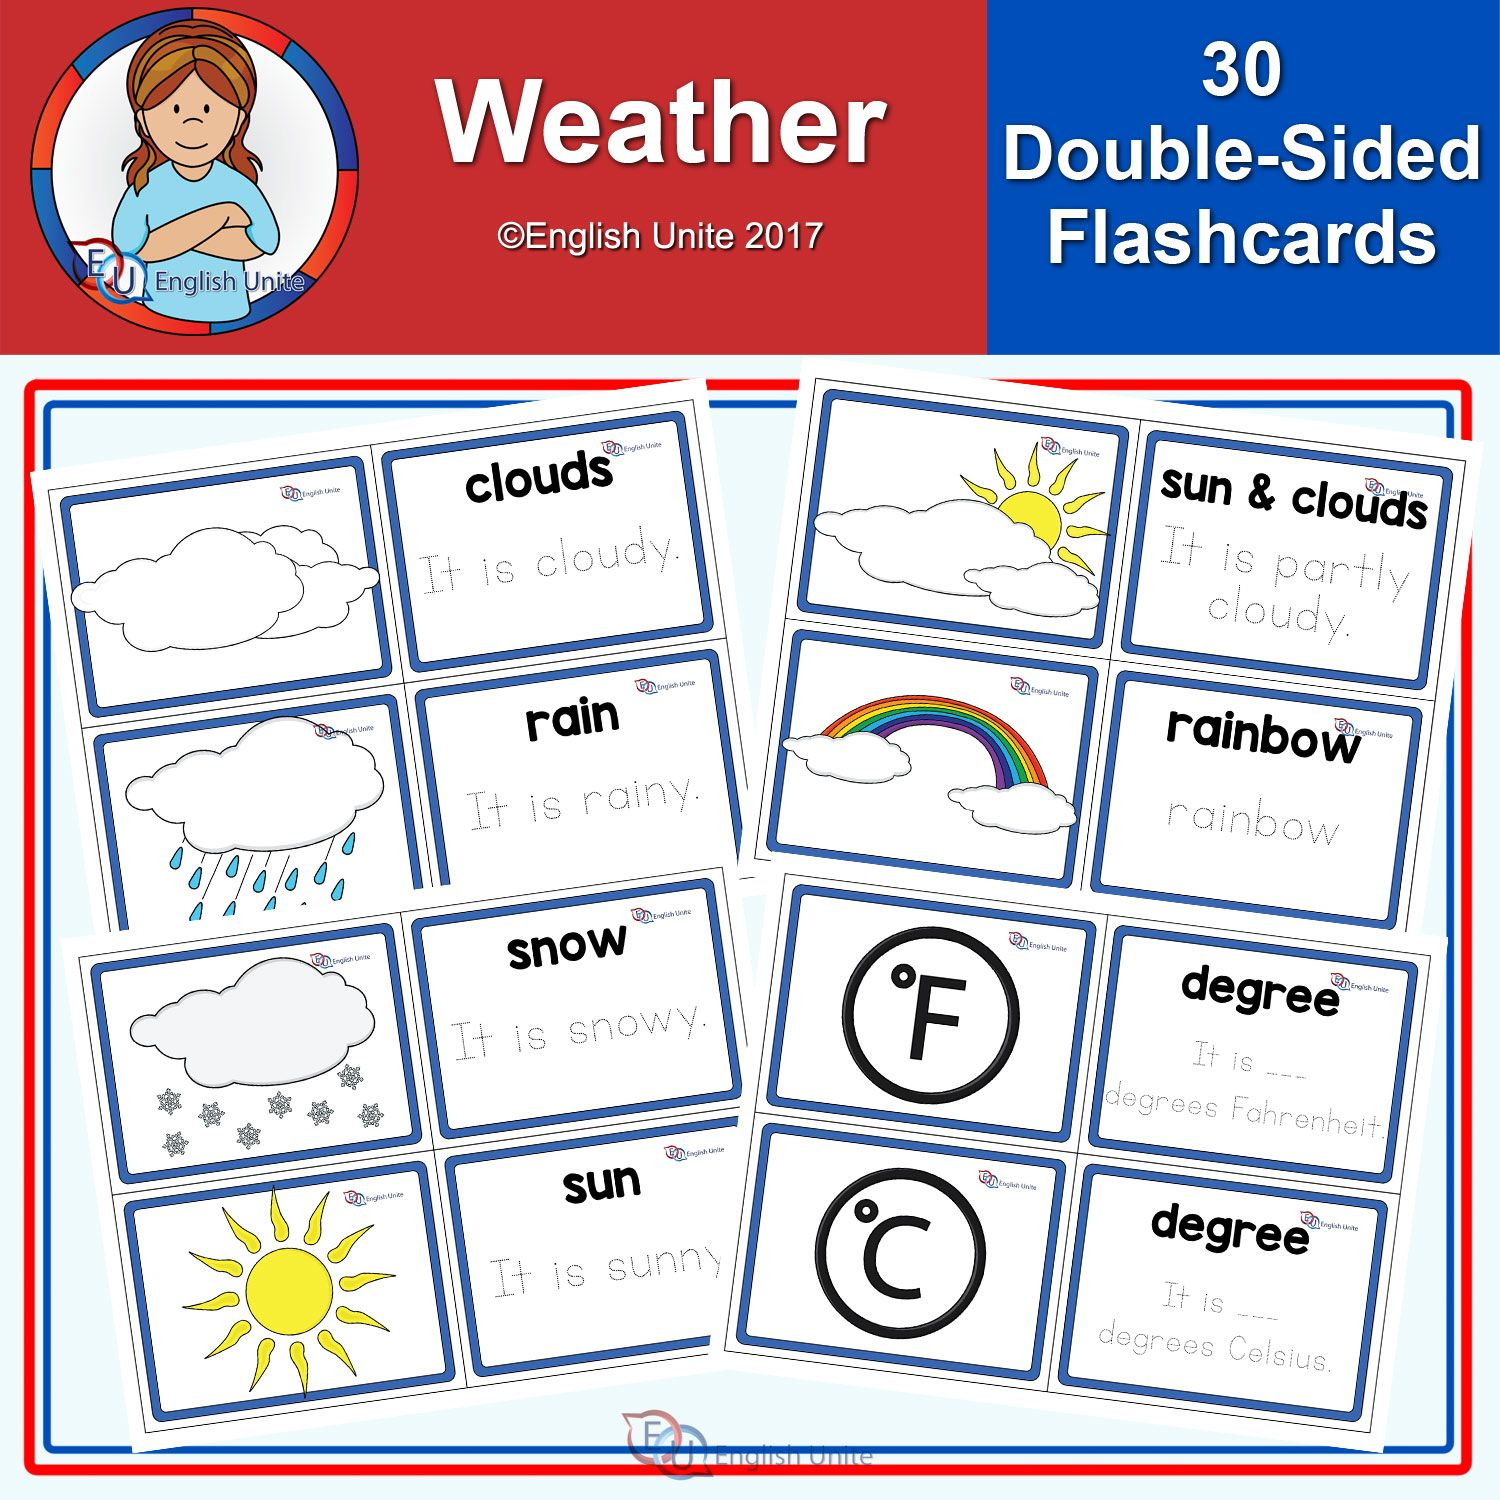 Weather Flashcards Esl